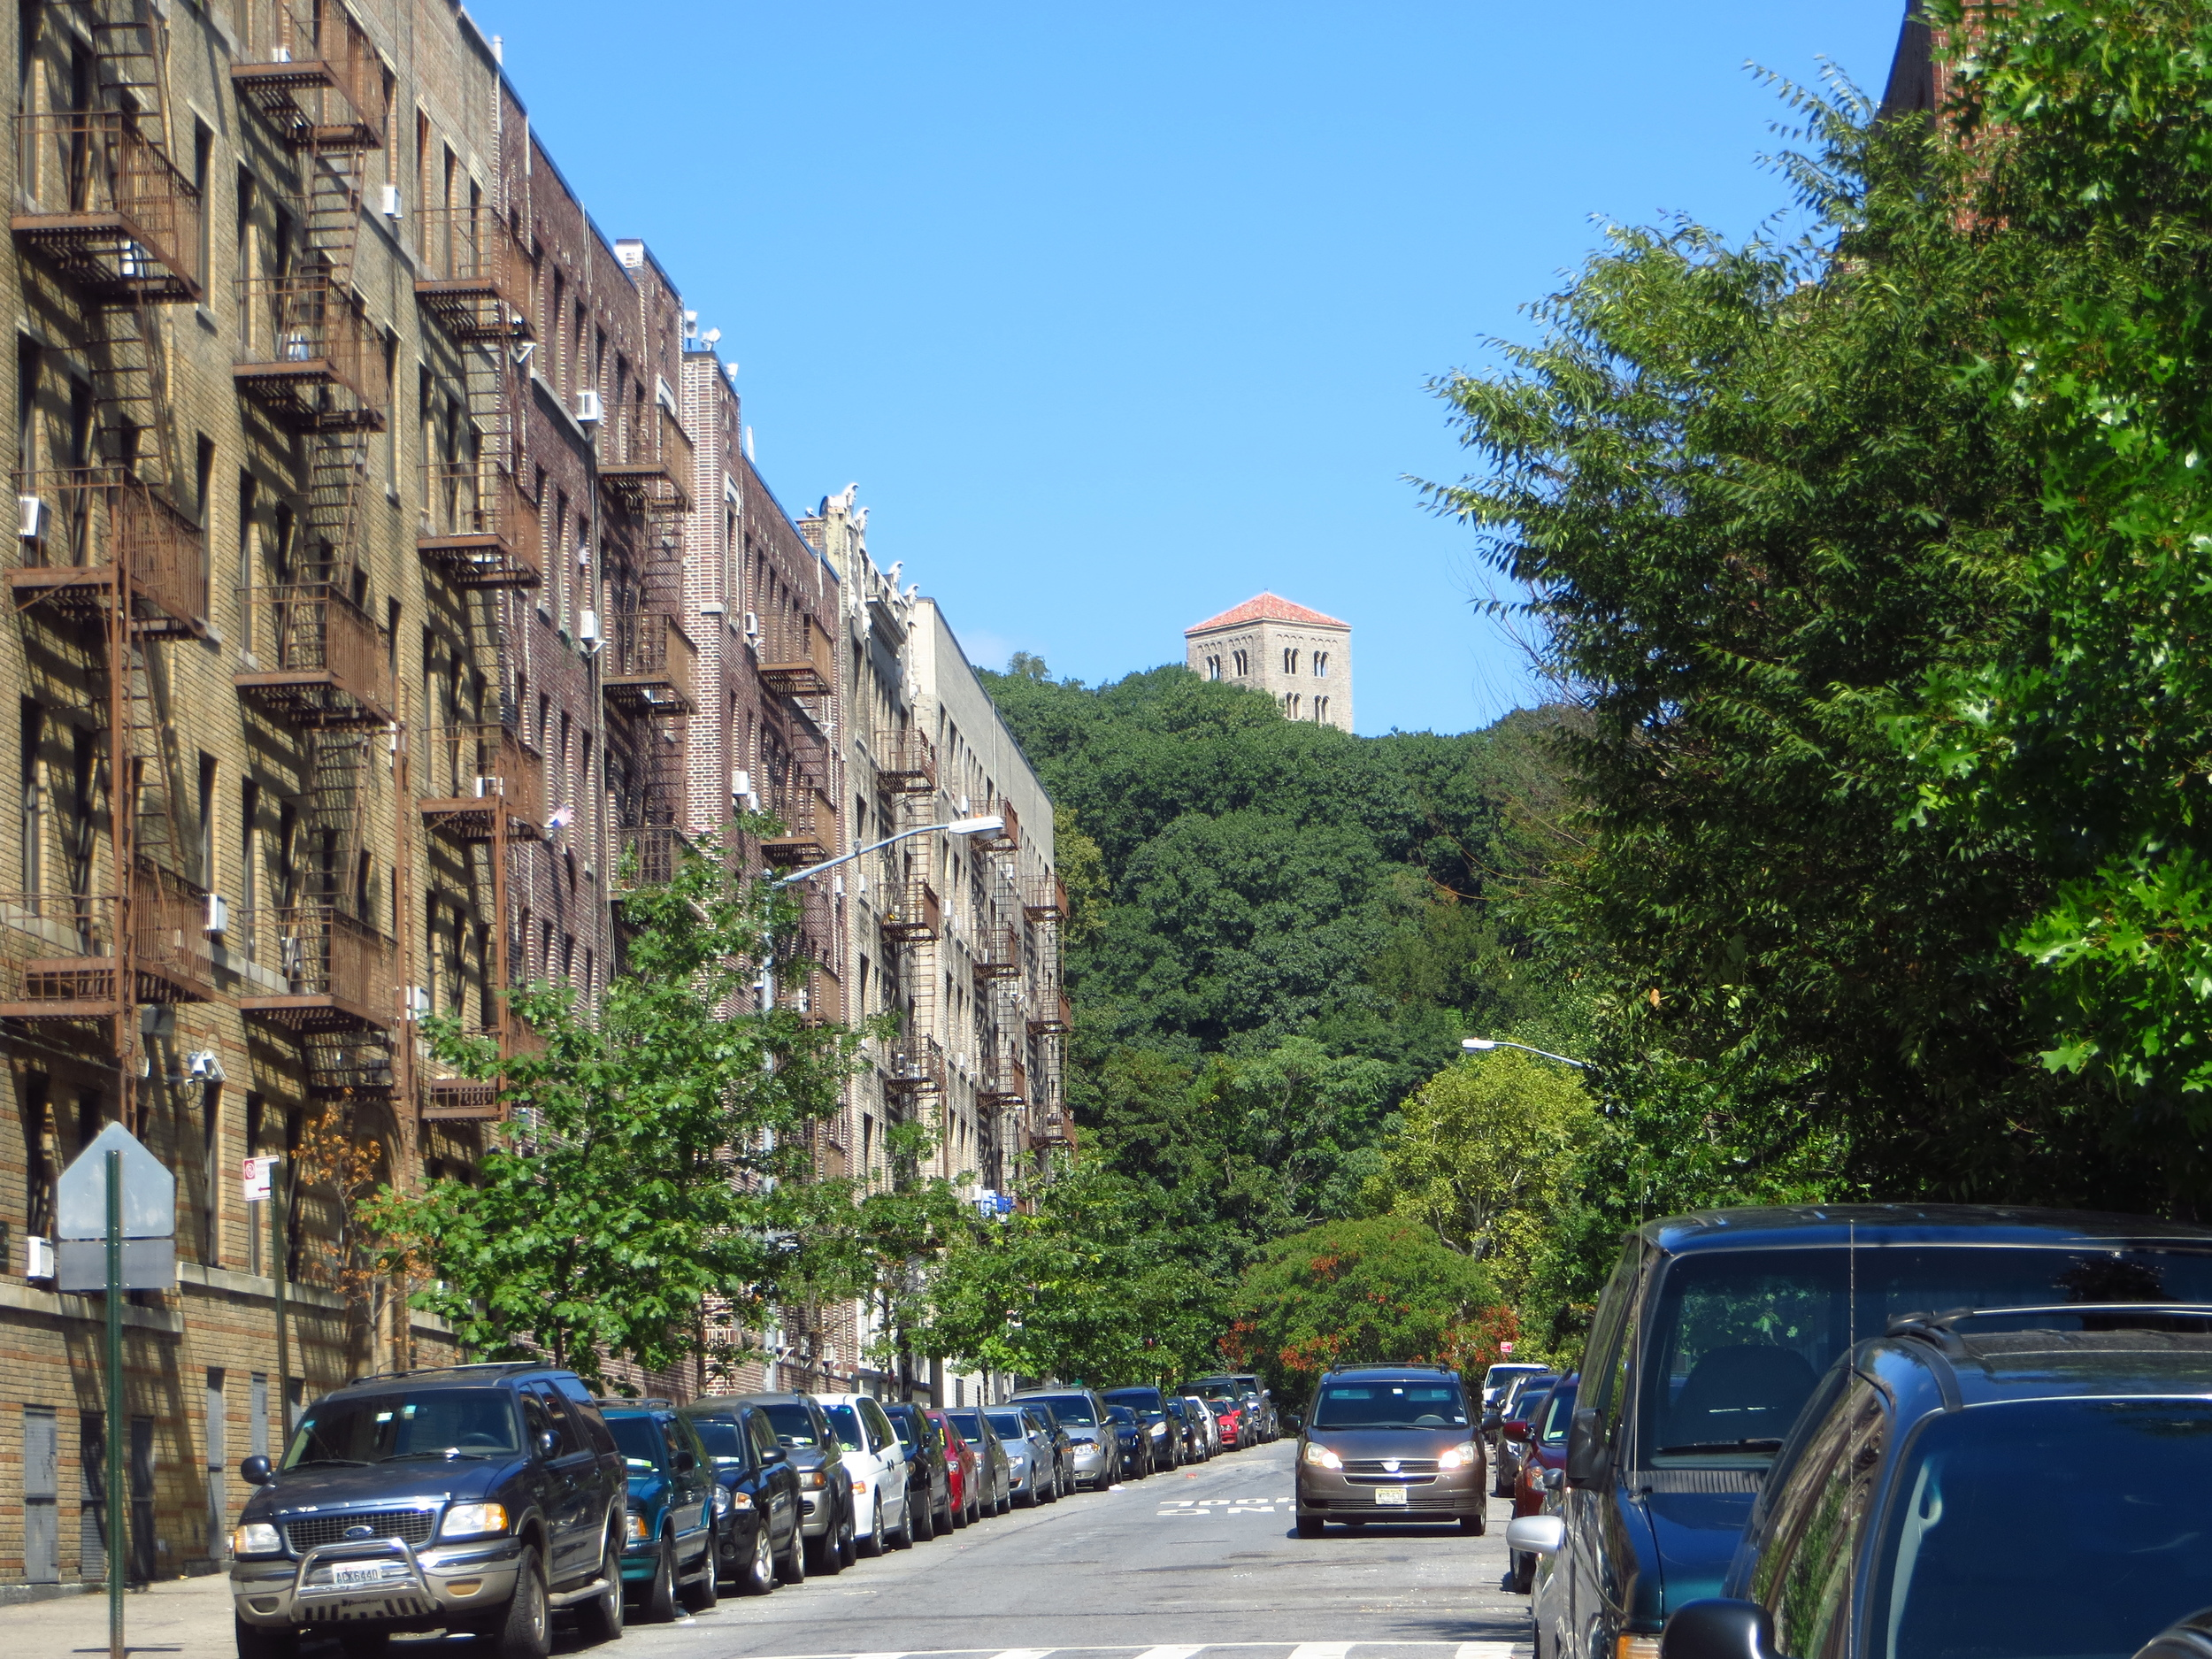 Typical Inwood street with Cloisters in the background